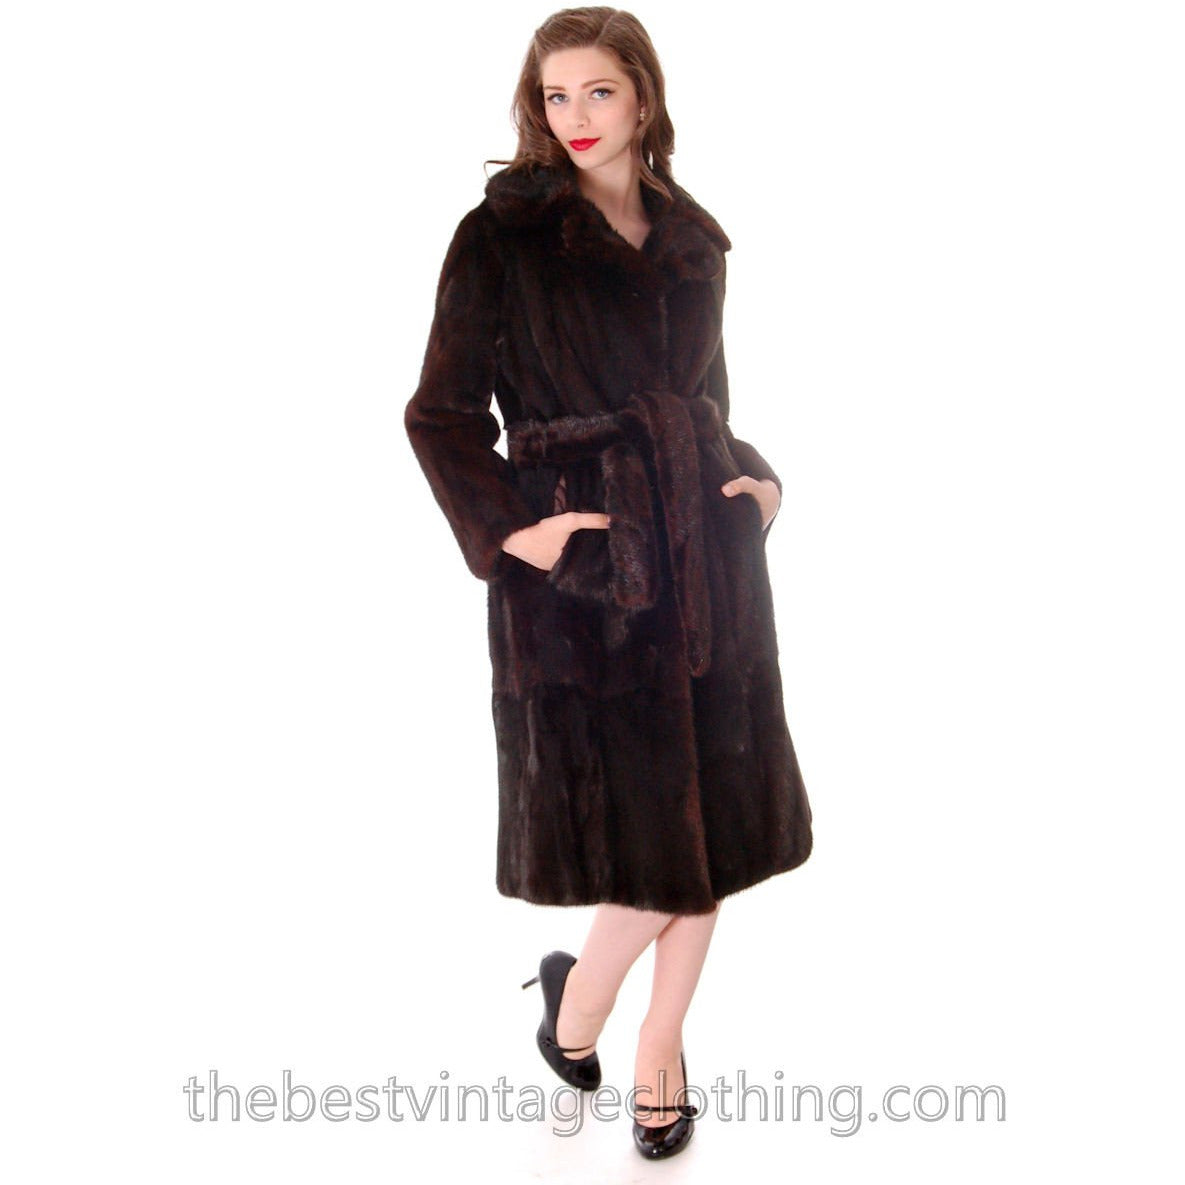 official hot-selling professional aesthetic appearance Vintage Black Ranch Mink Belted Trench Coat Christian Dior 1980s Medium